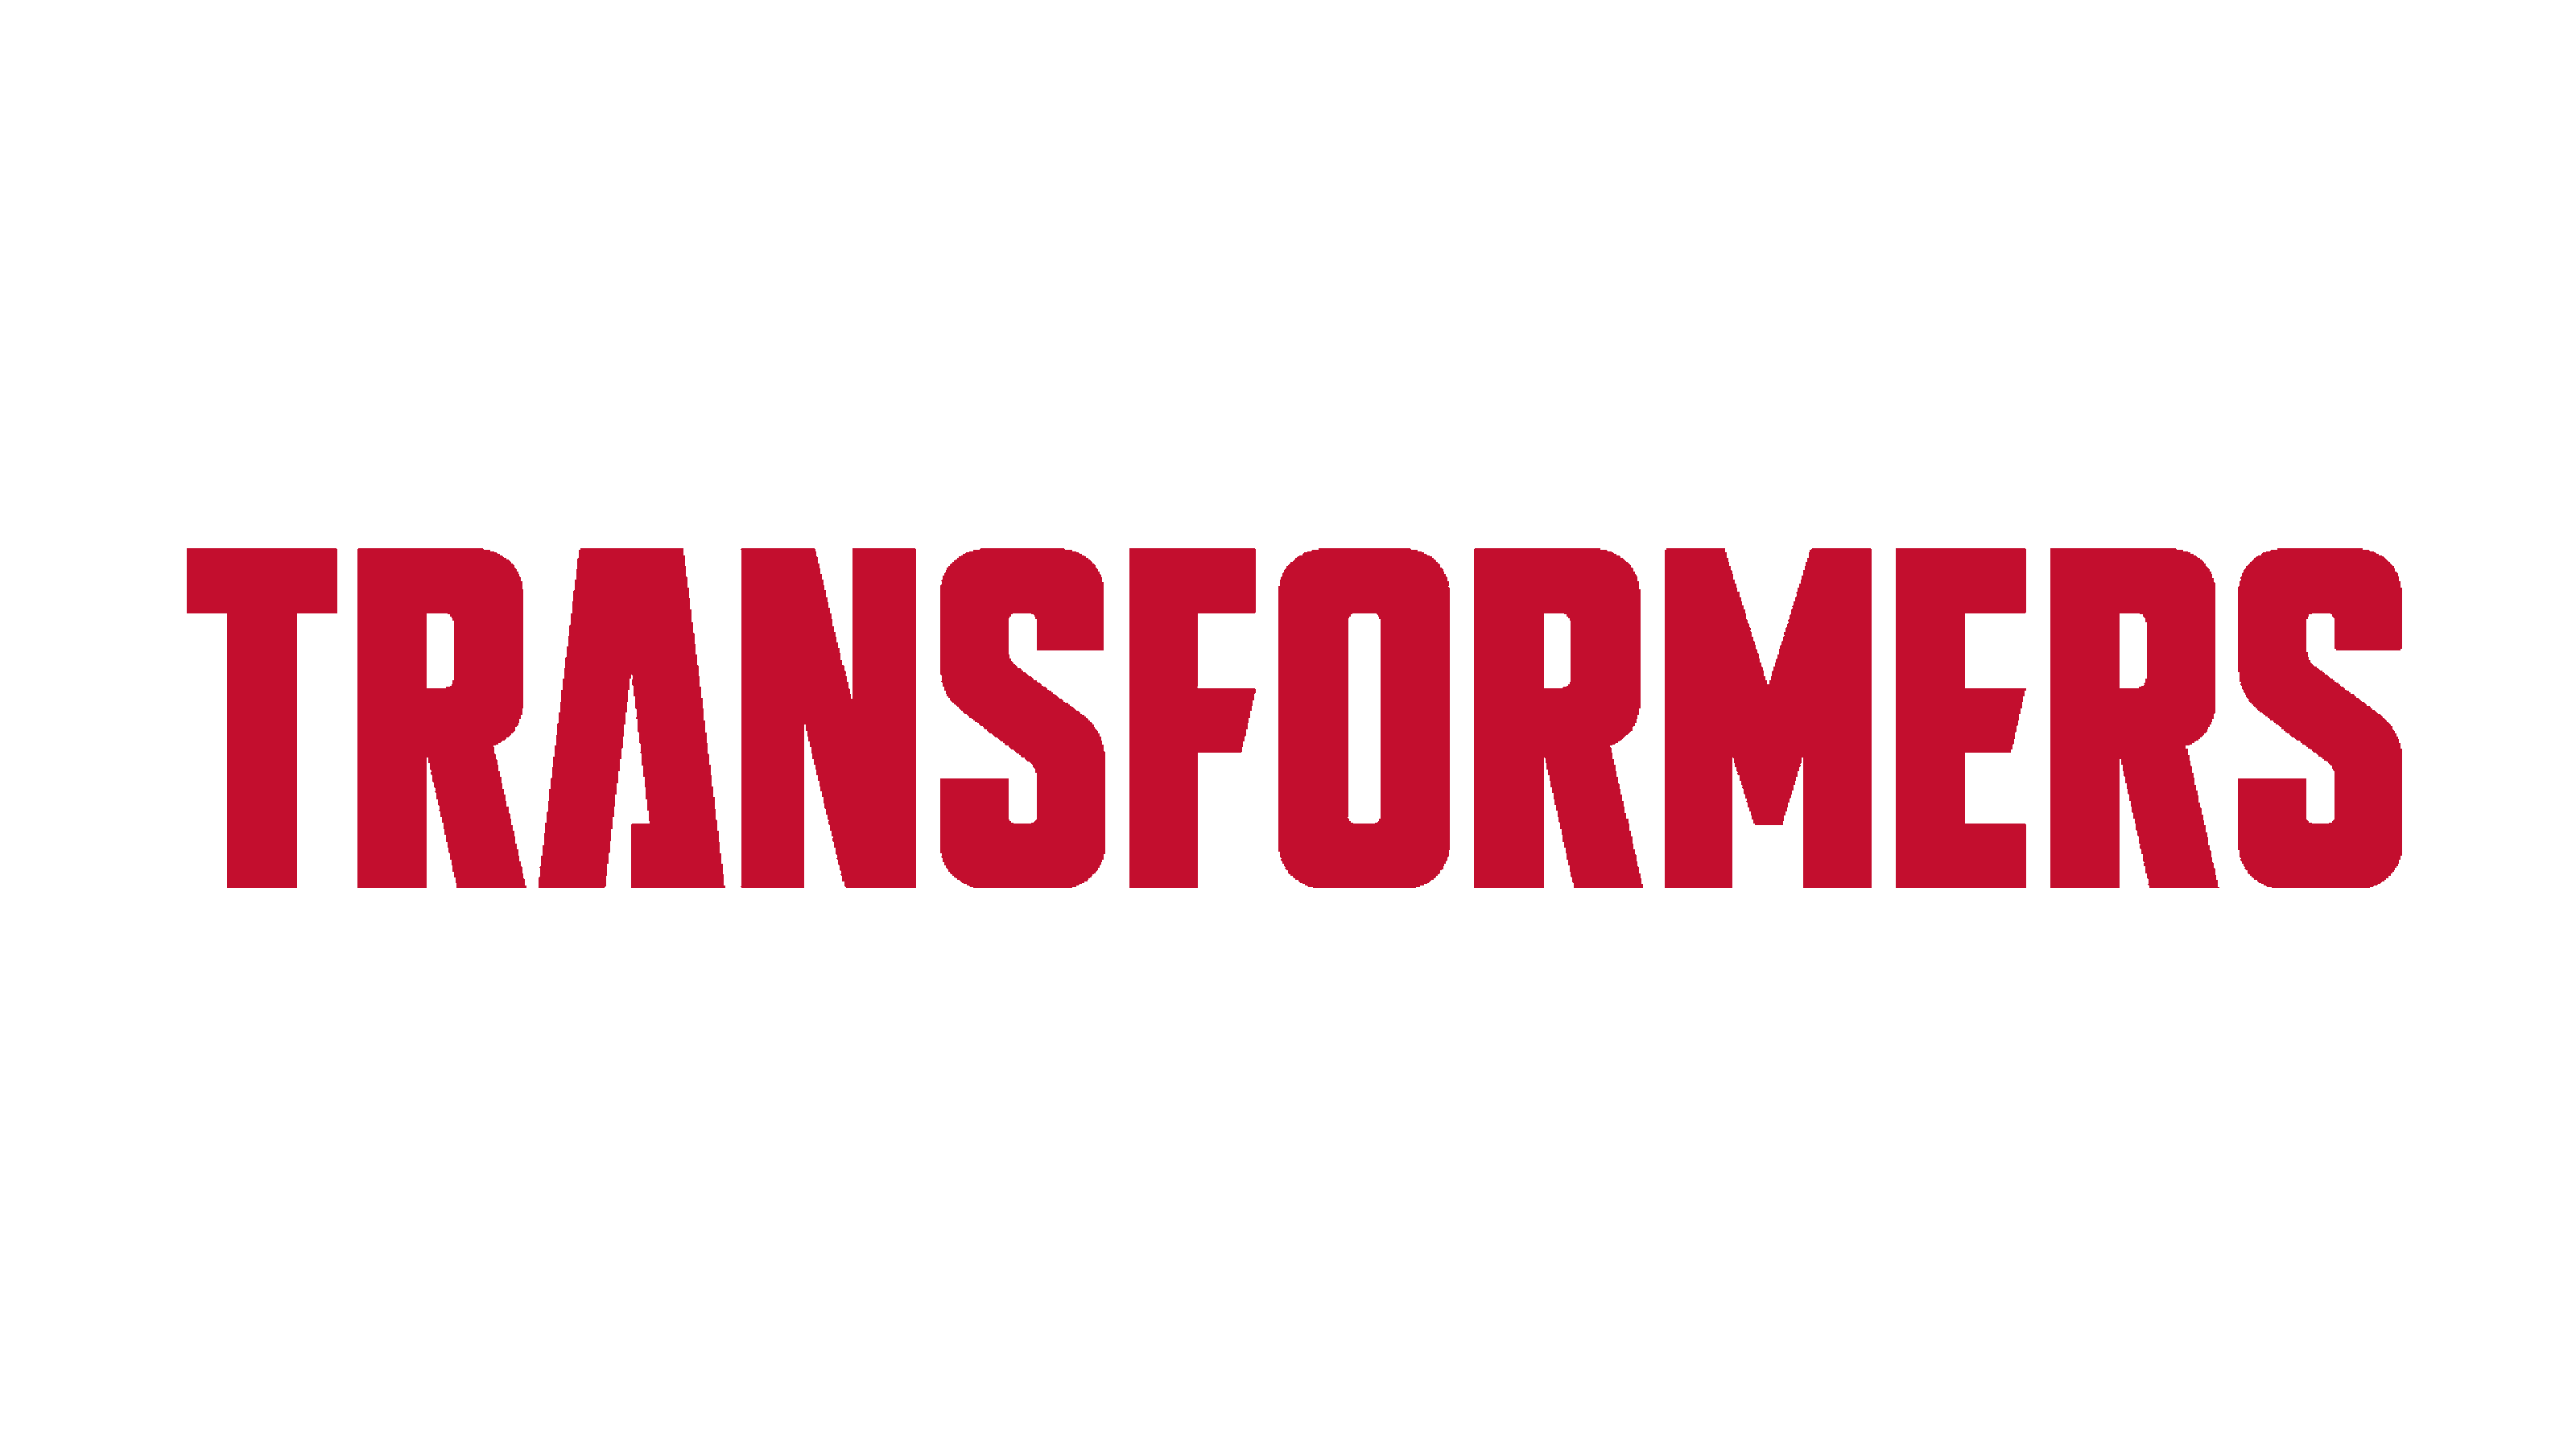 Transformers Logo Symbol Meaning History And Evolution